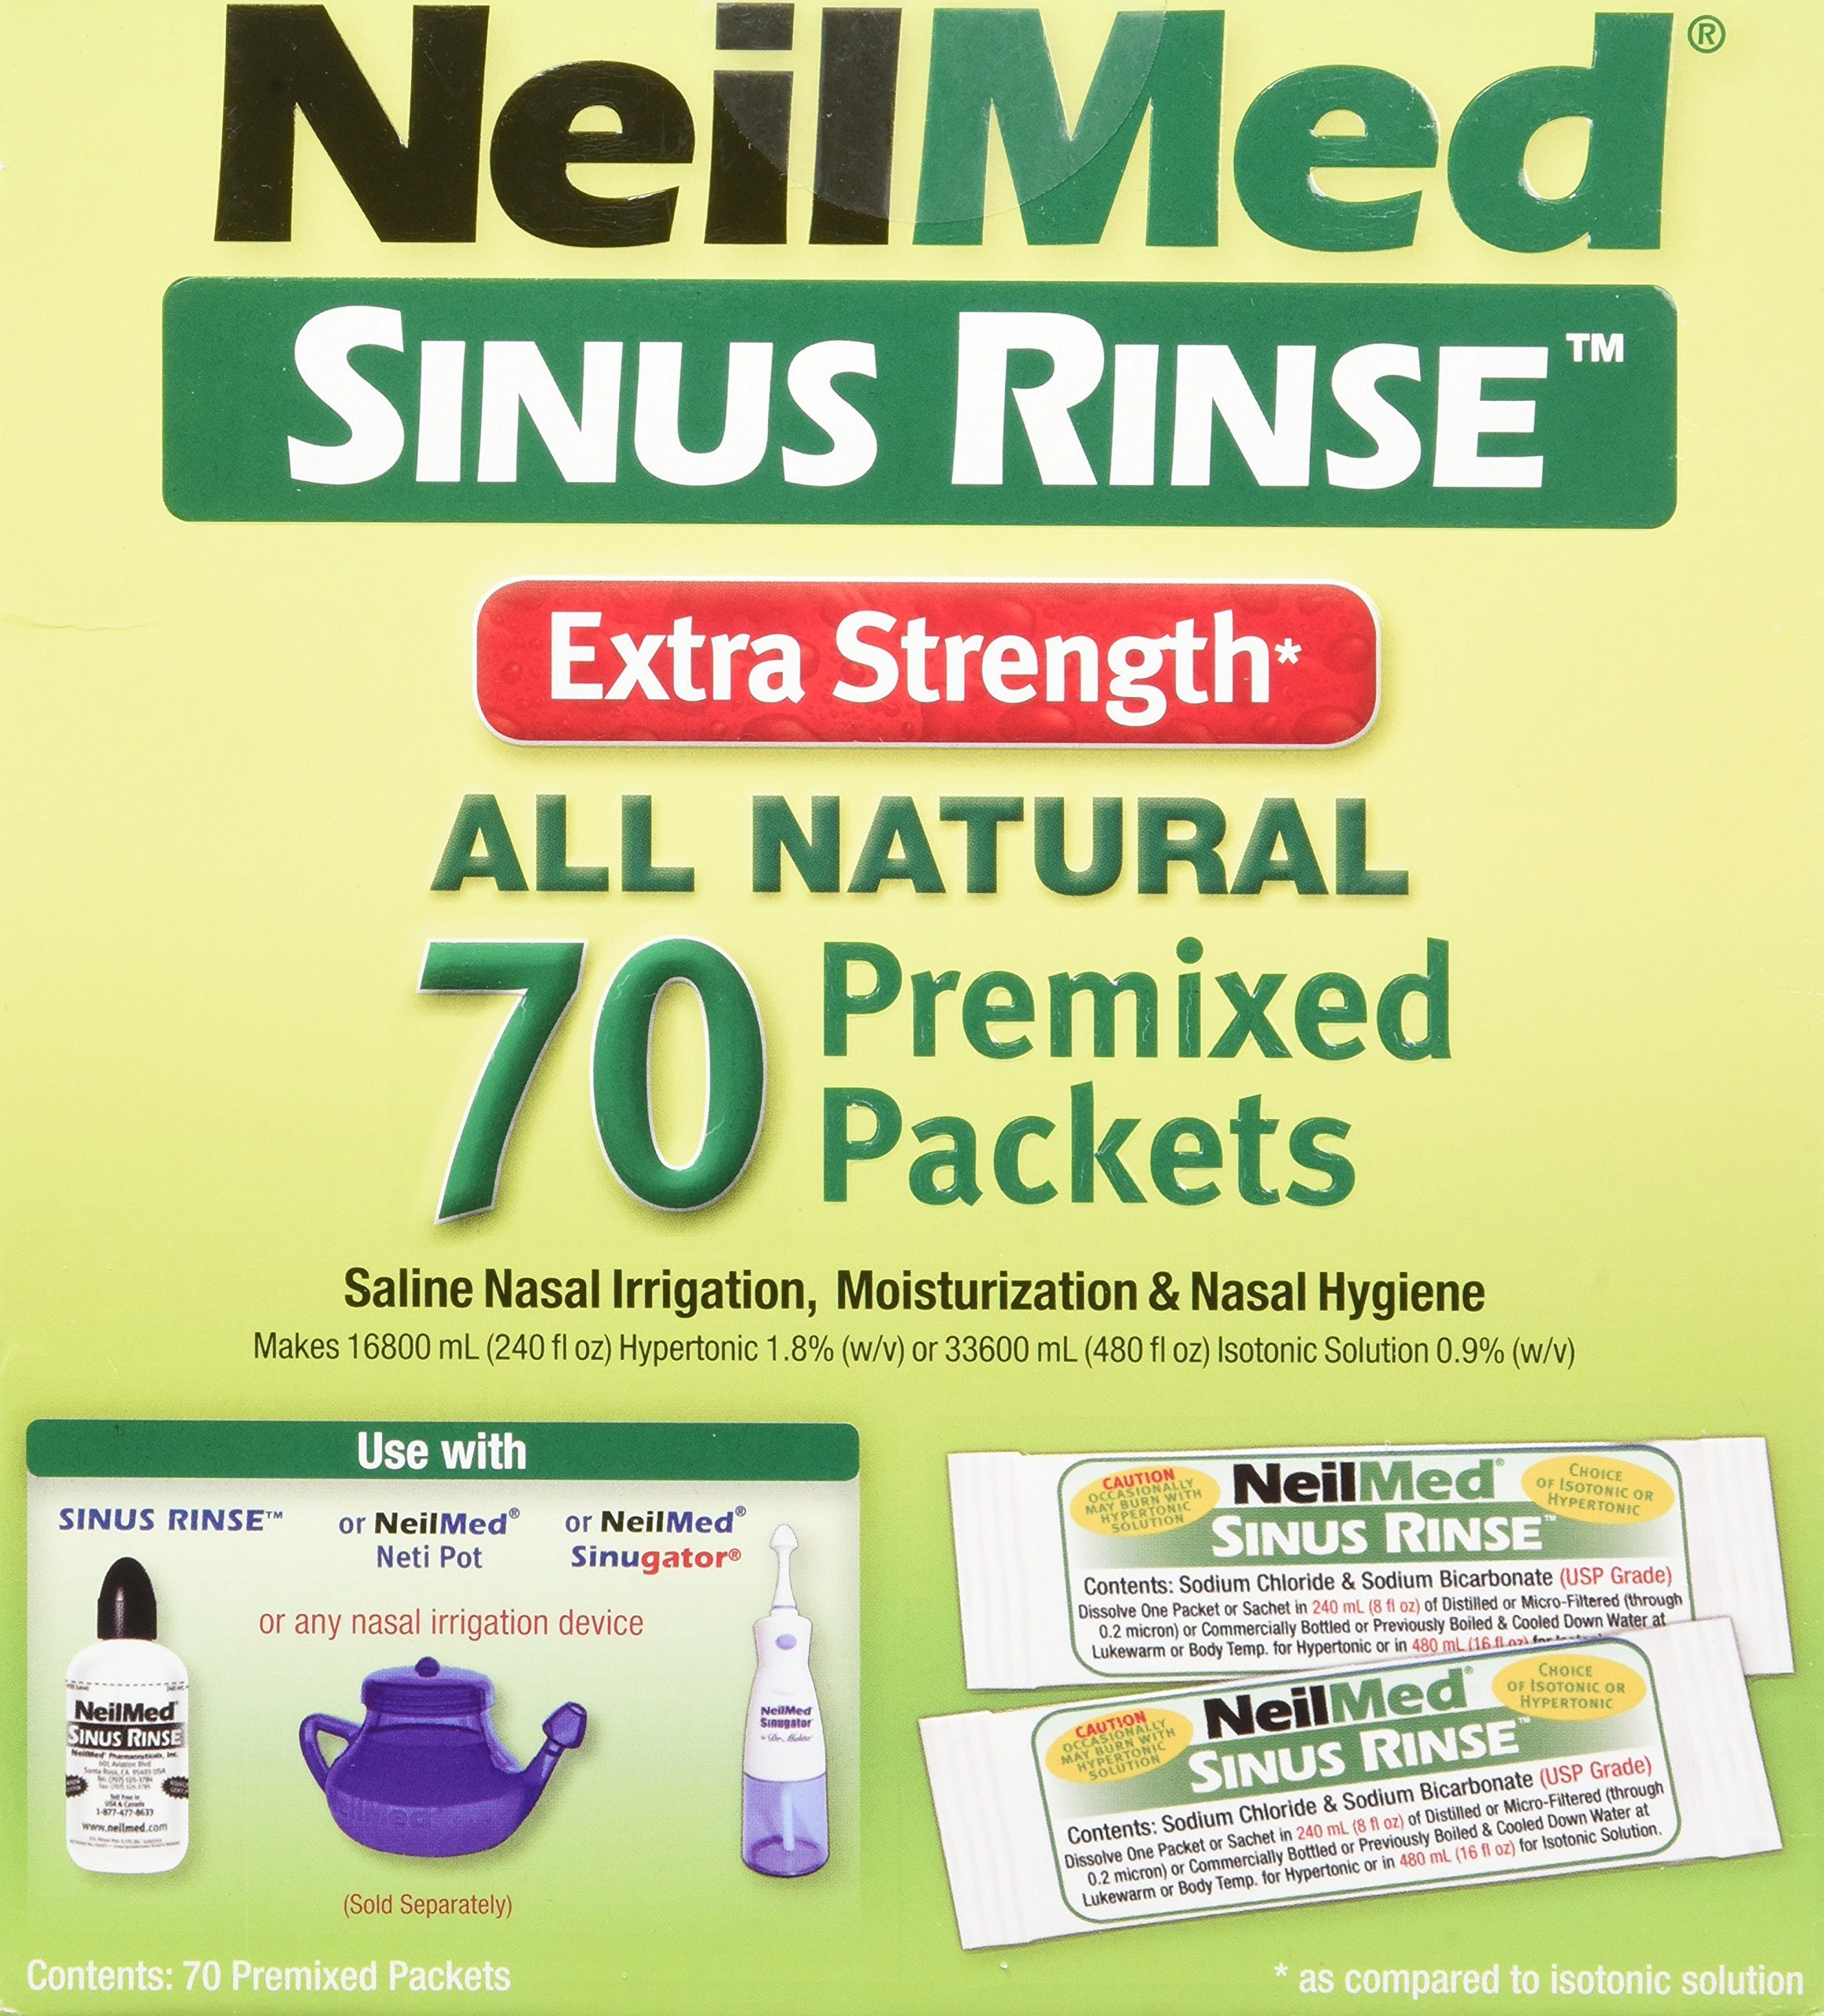 NeilMed's Sinus Rinse Extra Strength Pre-Mixed Hypertonic Packets, 70-Count Boxes (Pack of 2) by NeilMed